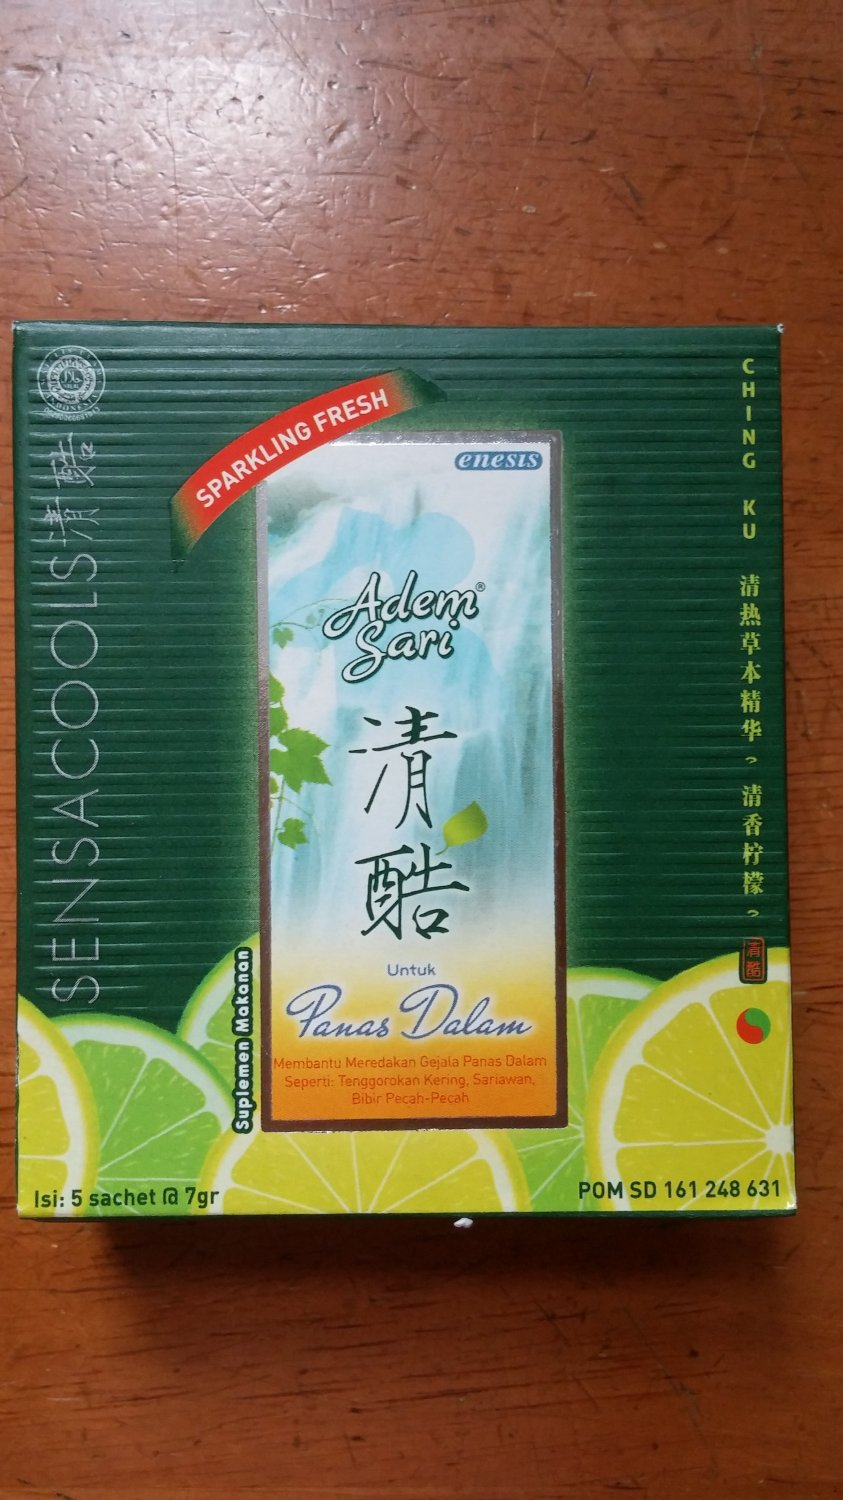 Sensa Cool - Adem Sari Refreshing Concentrate Drink Pack Of 2 Boxes (10 Sachets)